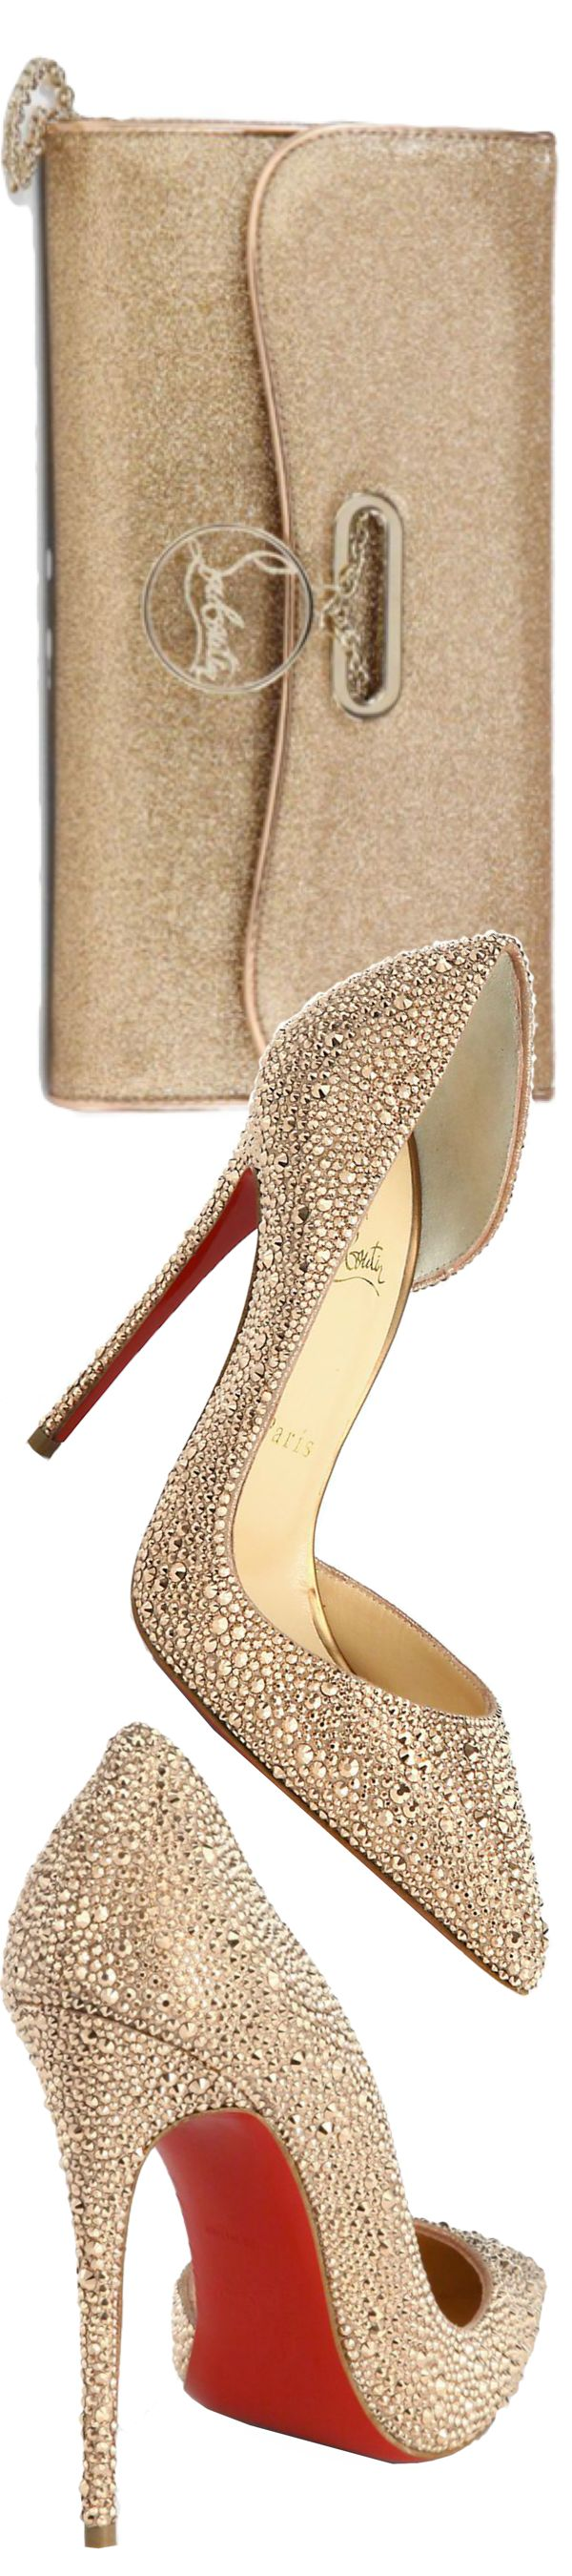 NSFWDump on. Christian Louboutin OutletRed Bottom ShoesRed ...